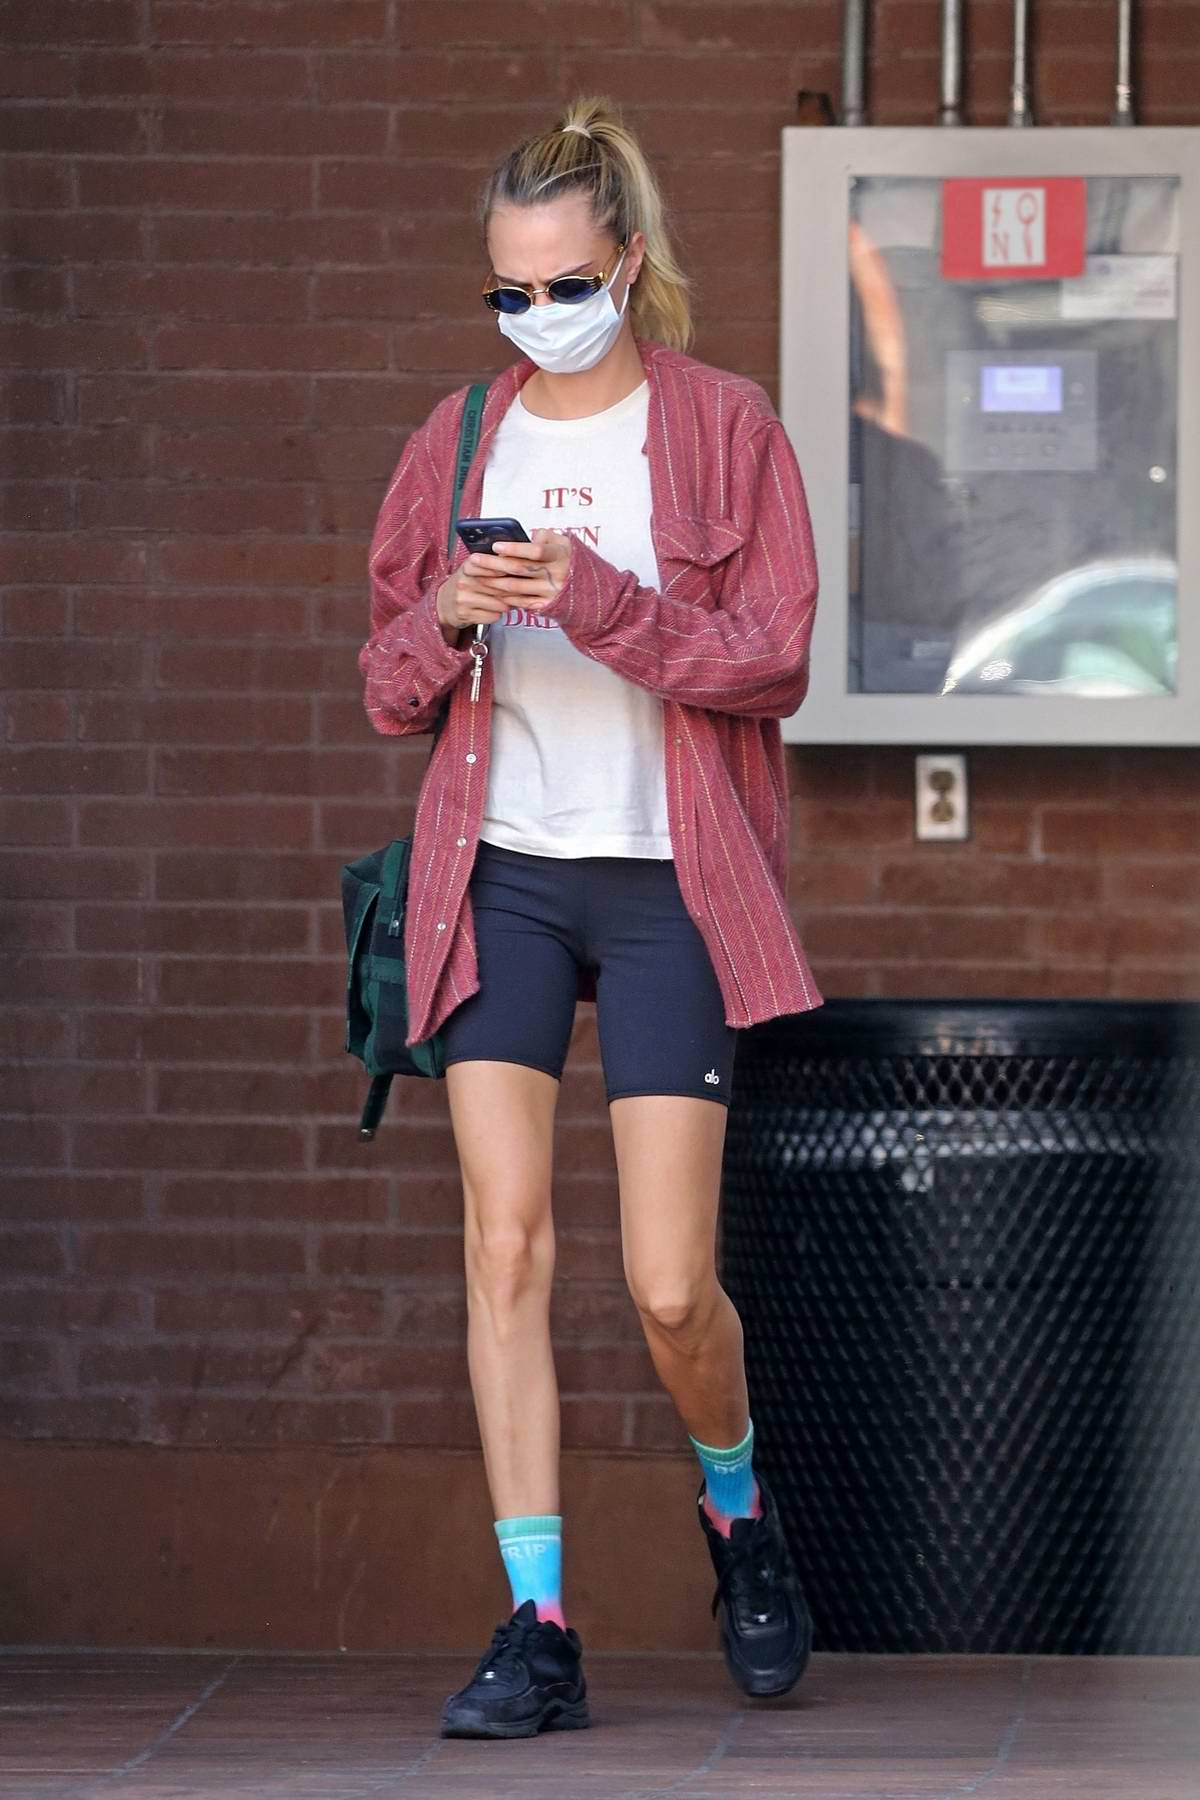 Cara Delevingne wears a red shirt with black bike shorts while heading to a medical building in Beverly Hills, California